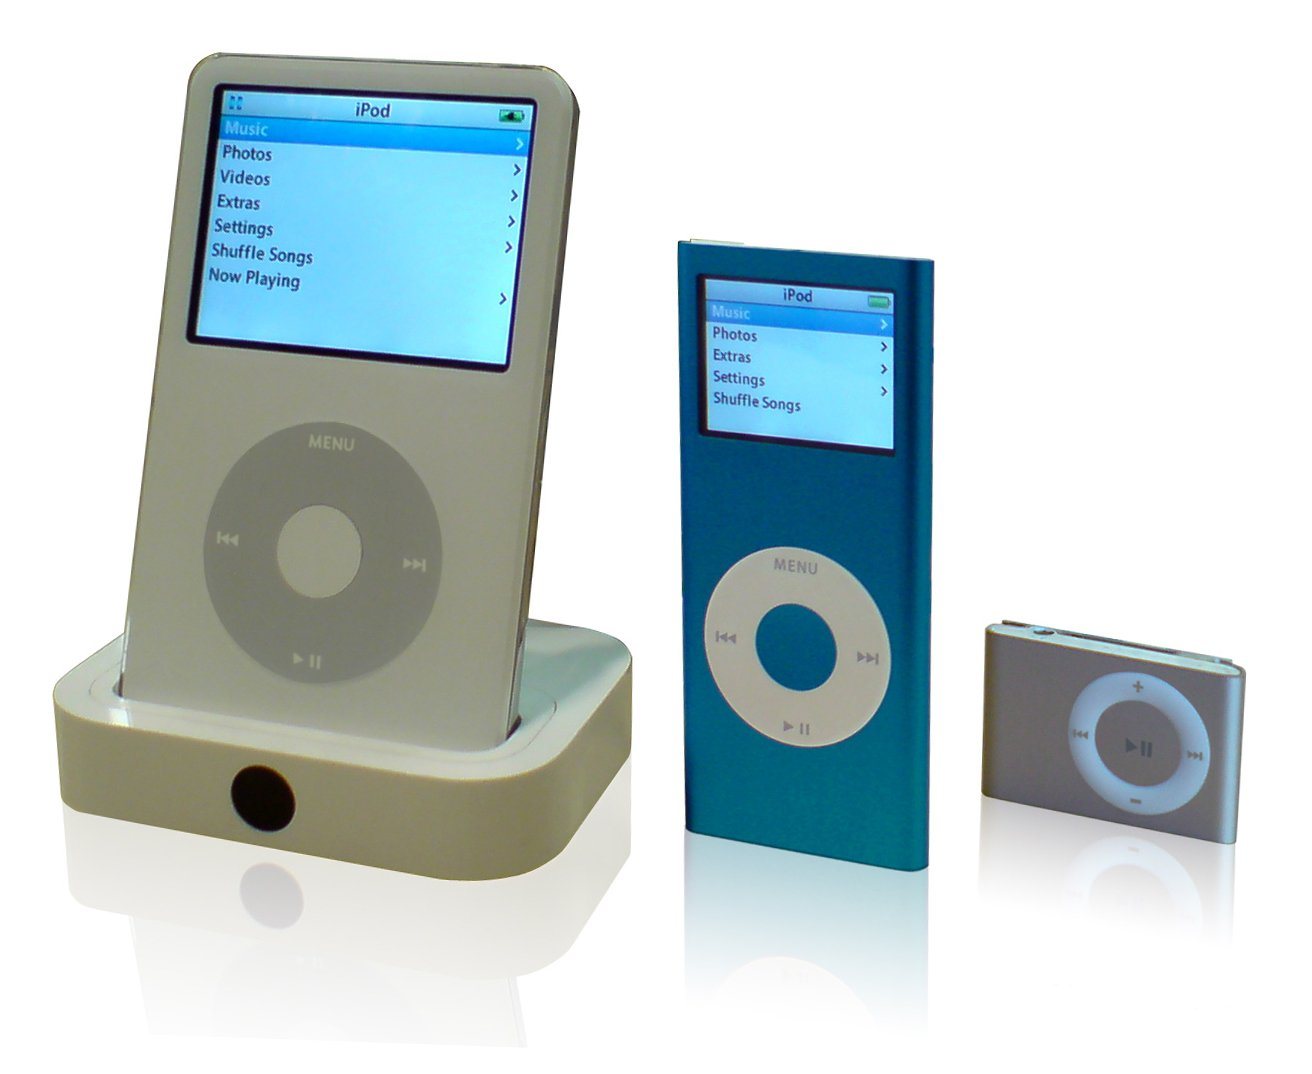 Apple iPod mp3 players